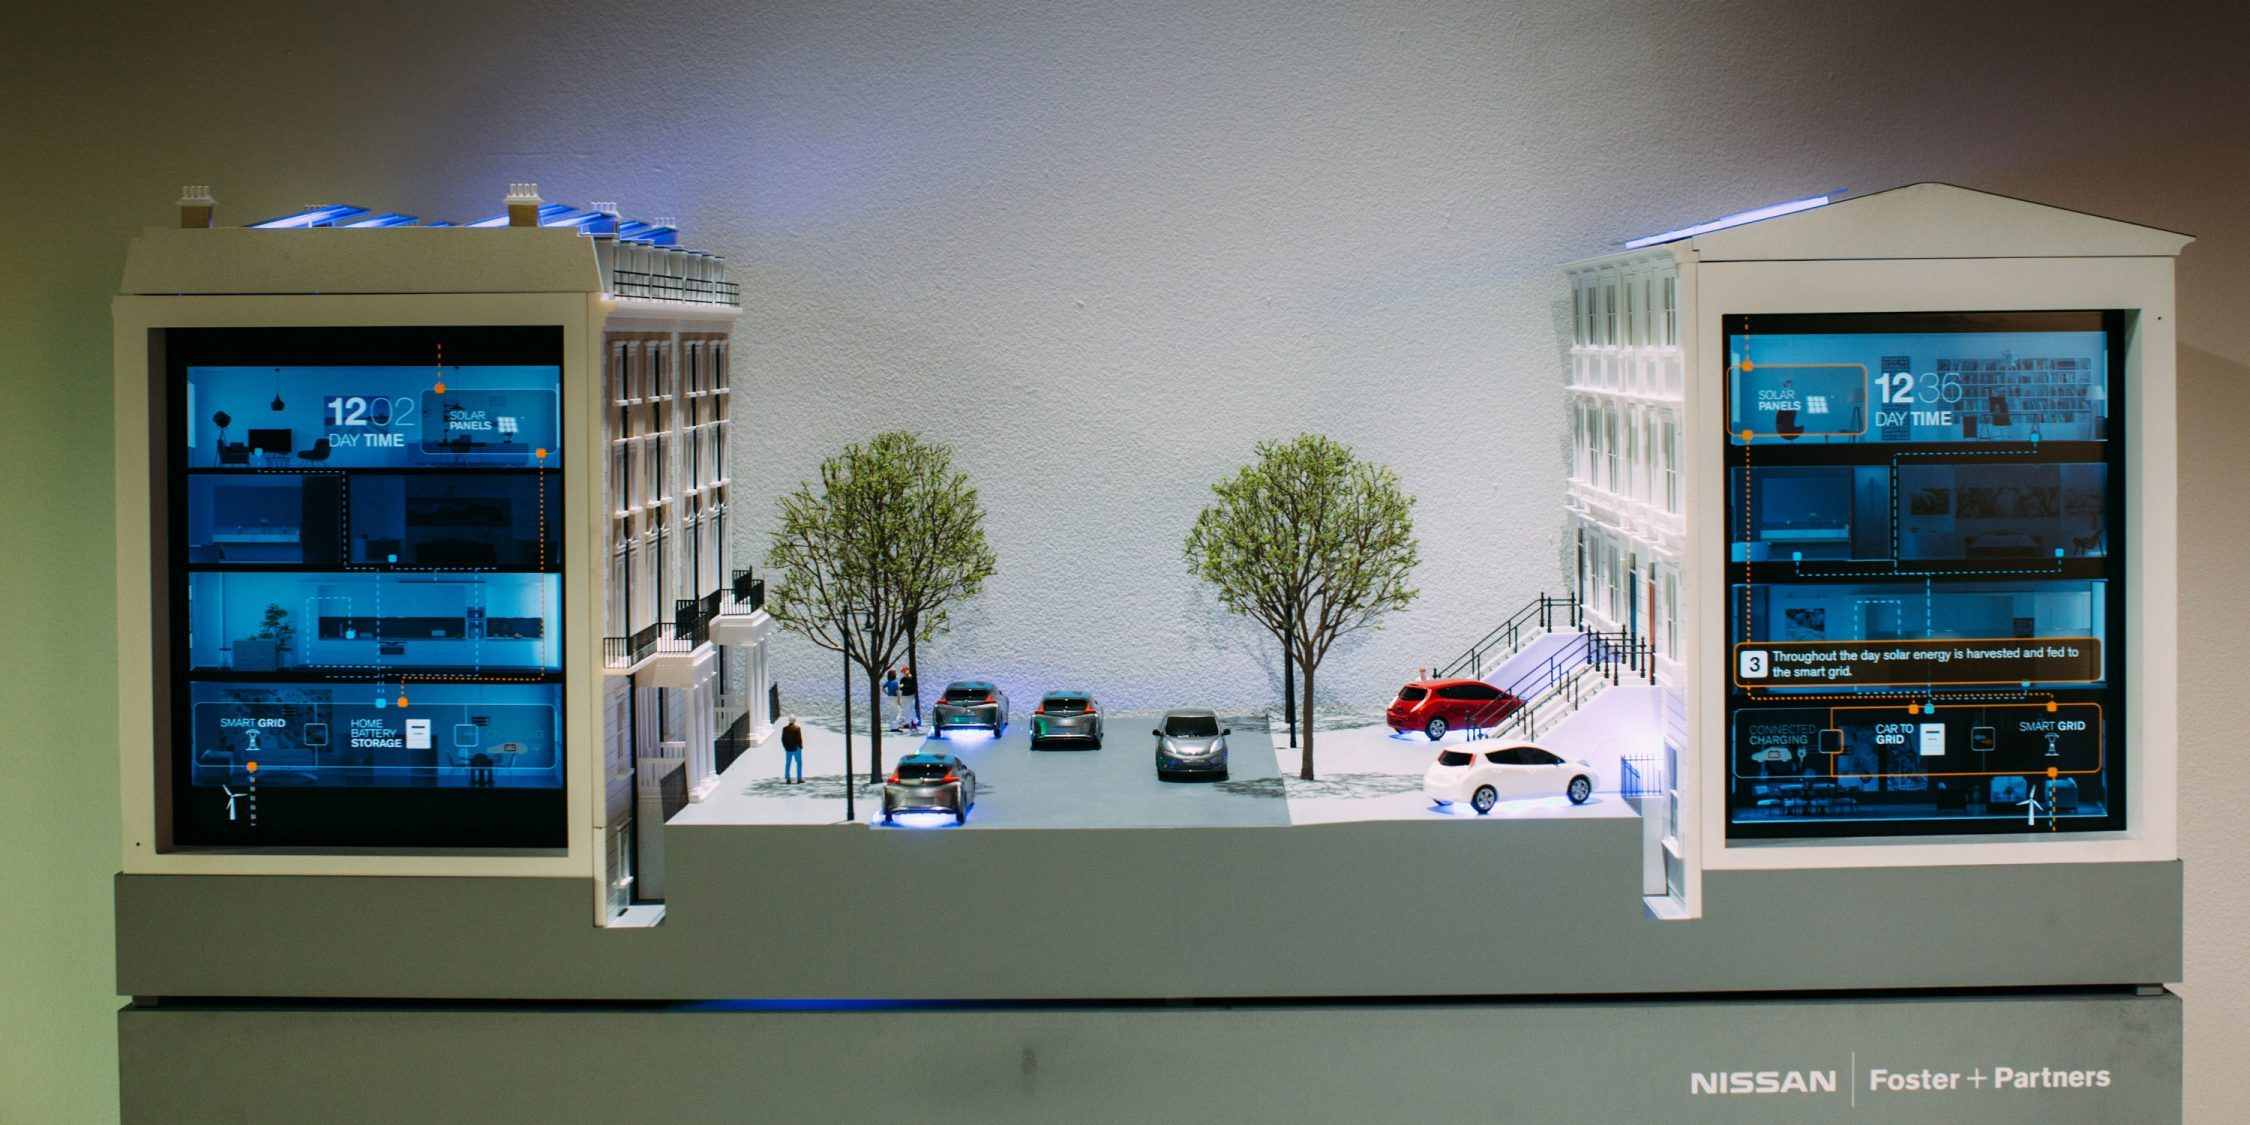 Video showing Nissan's vision of a sustainable, fully integrated future